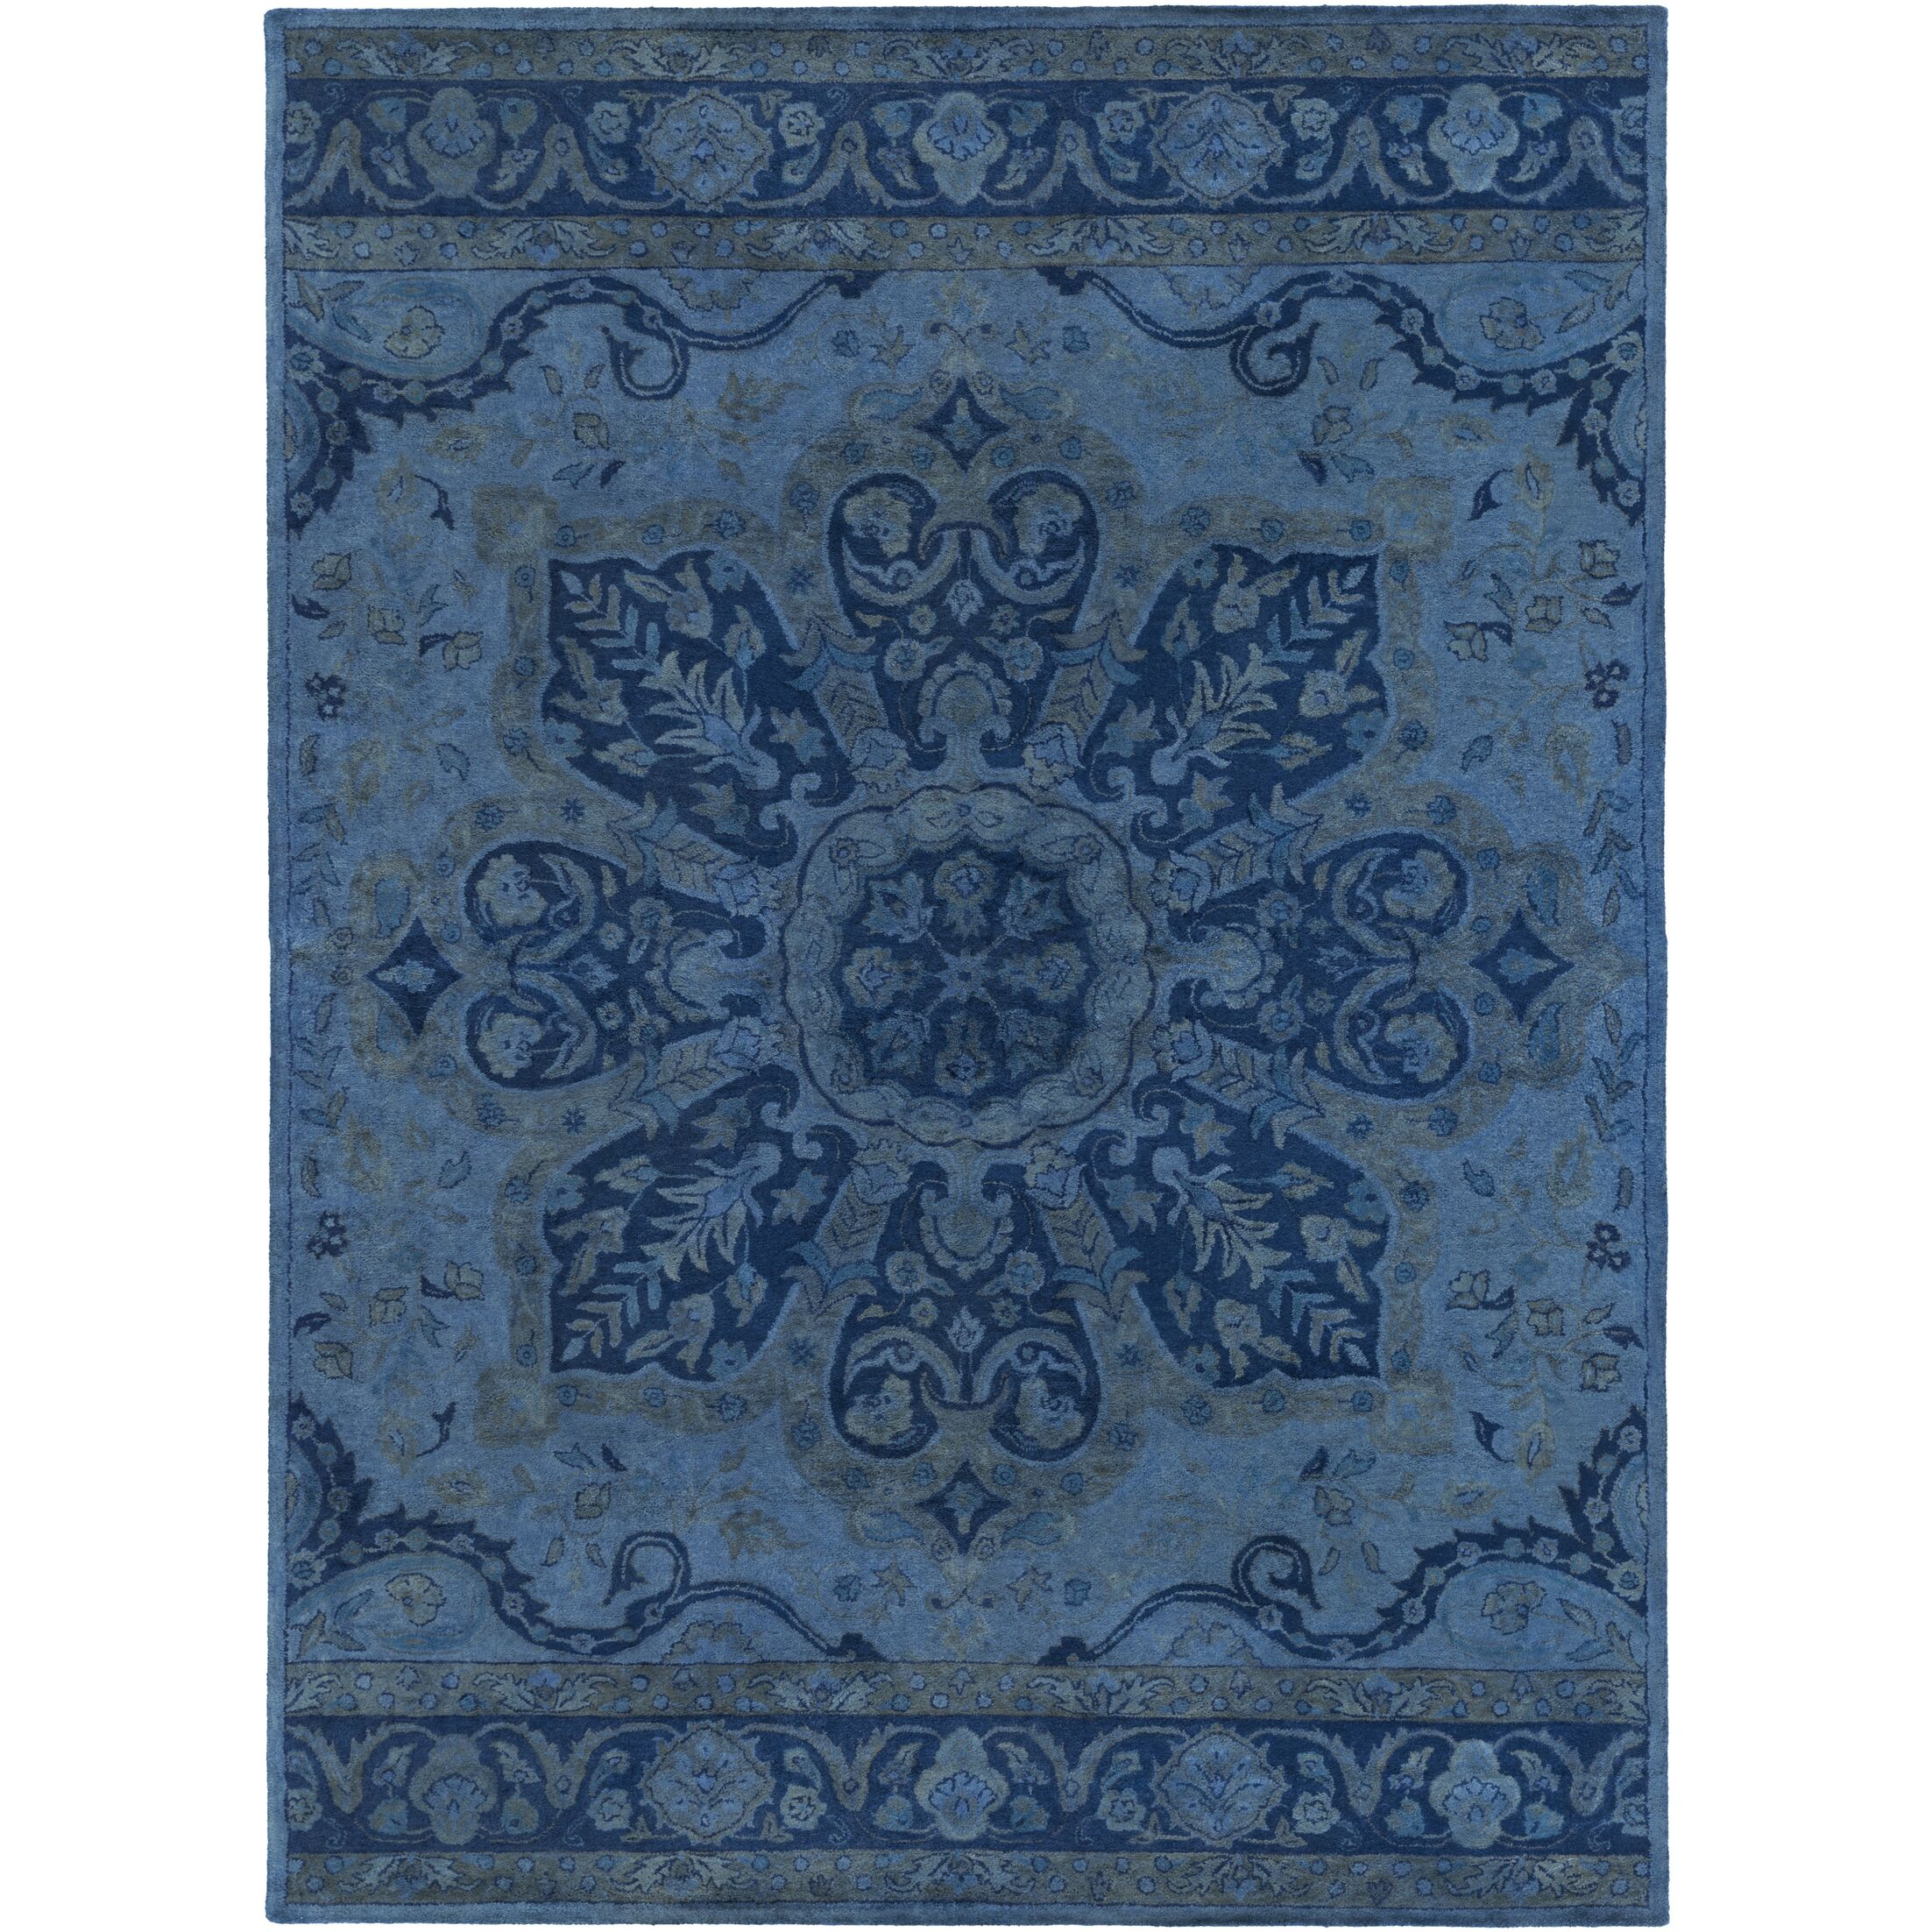 Arensburg Hand-Tufted Navy Area Rug Rug Size: Rectangle 8' x 11'